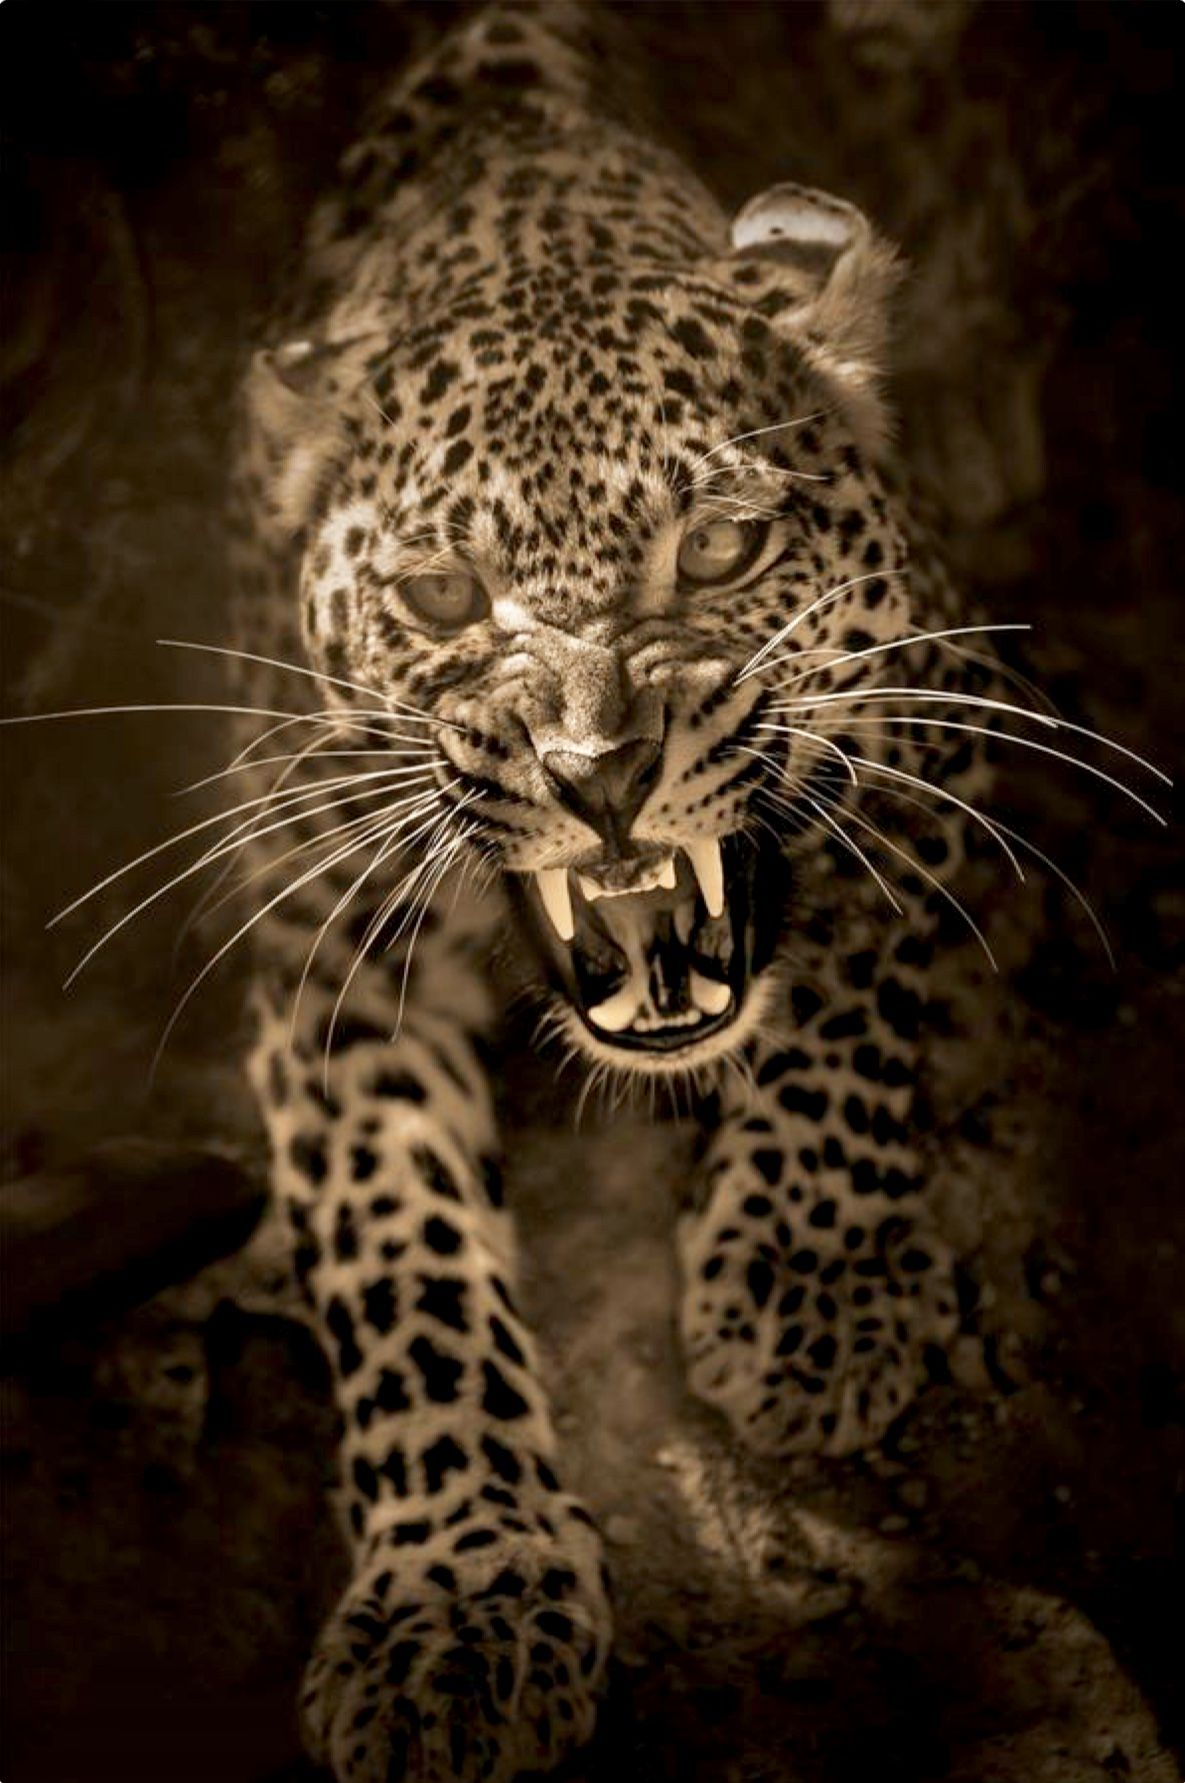 Snarling Leopard Emerging Darkness. Critters